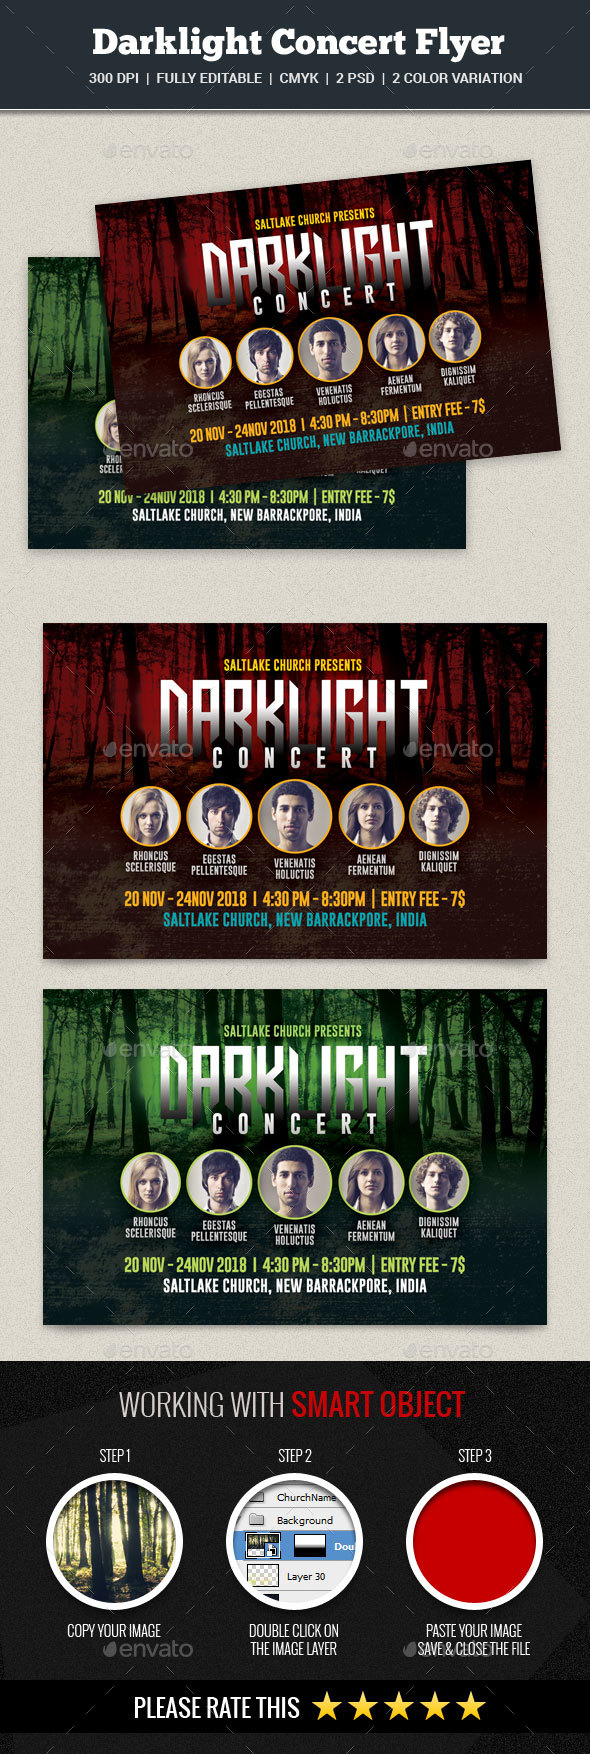 Darklight Concert Flyer - Church Flyers